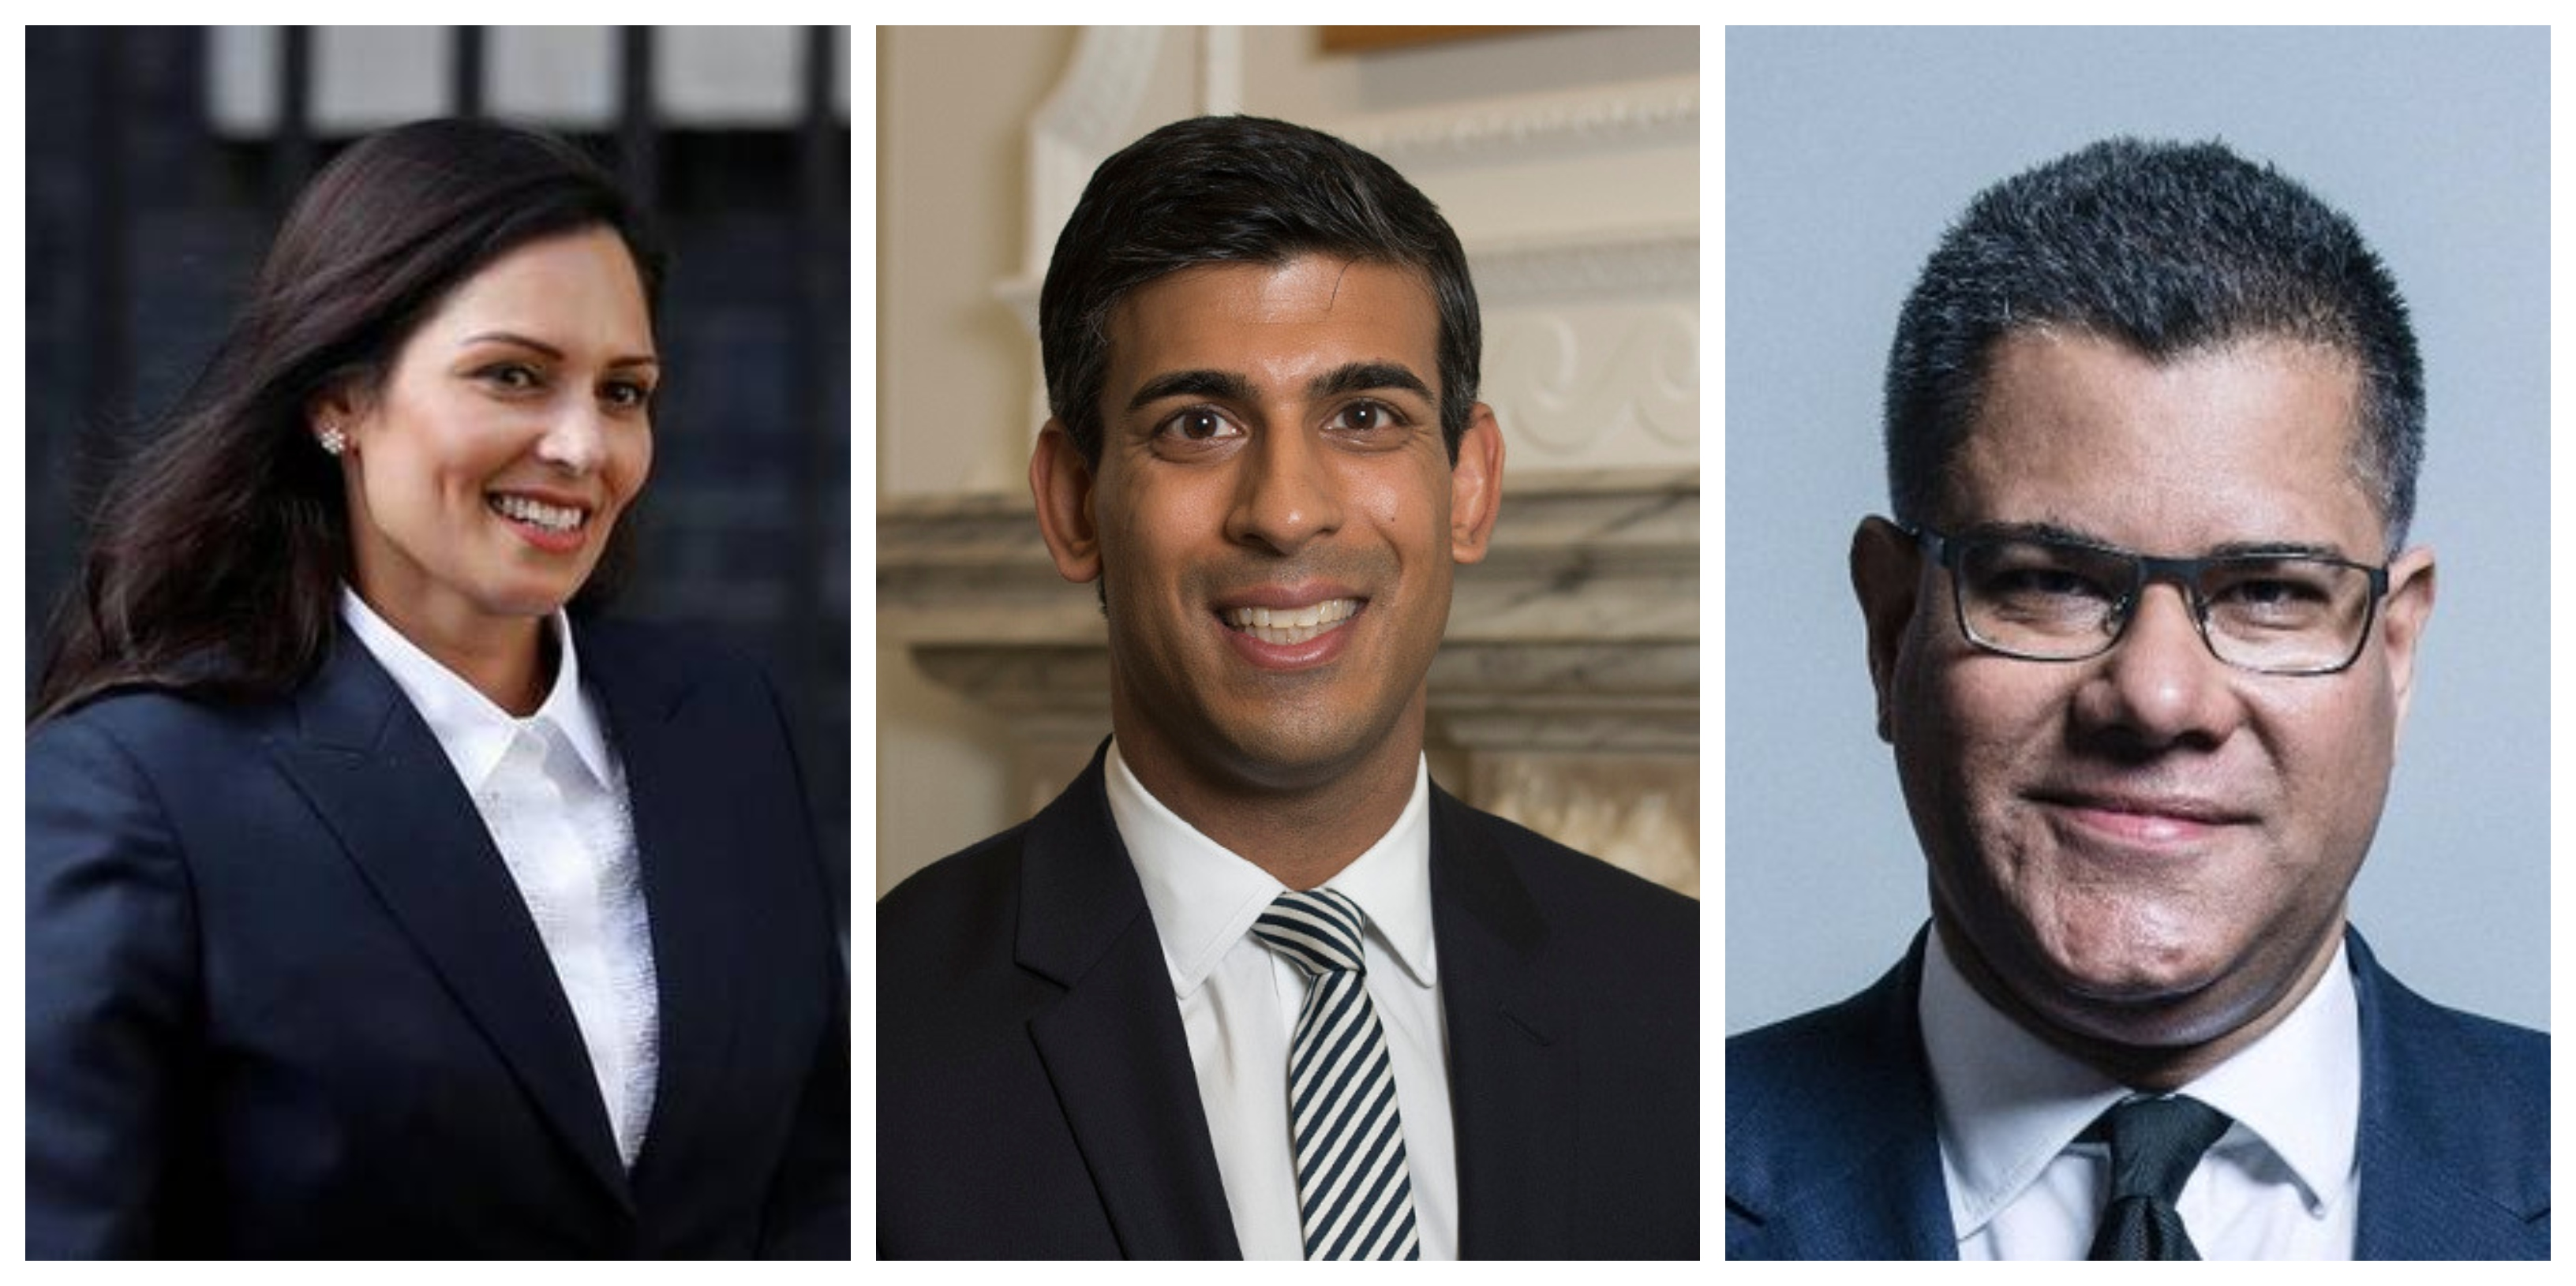 (From left) Priti Patel, Rishi Sunak and Alok Sharma who are members of UK PM Boris Johnson's cabinet. Photo courtesy: Wikimedia